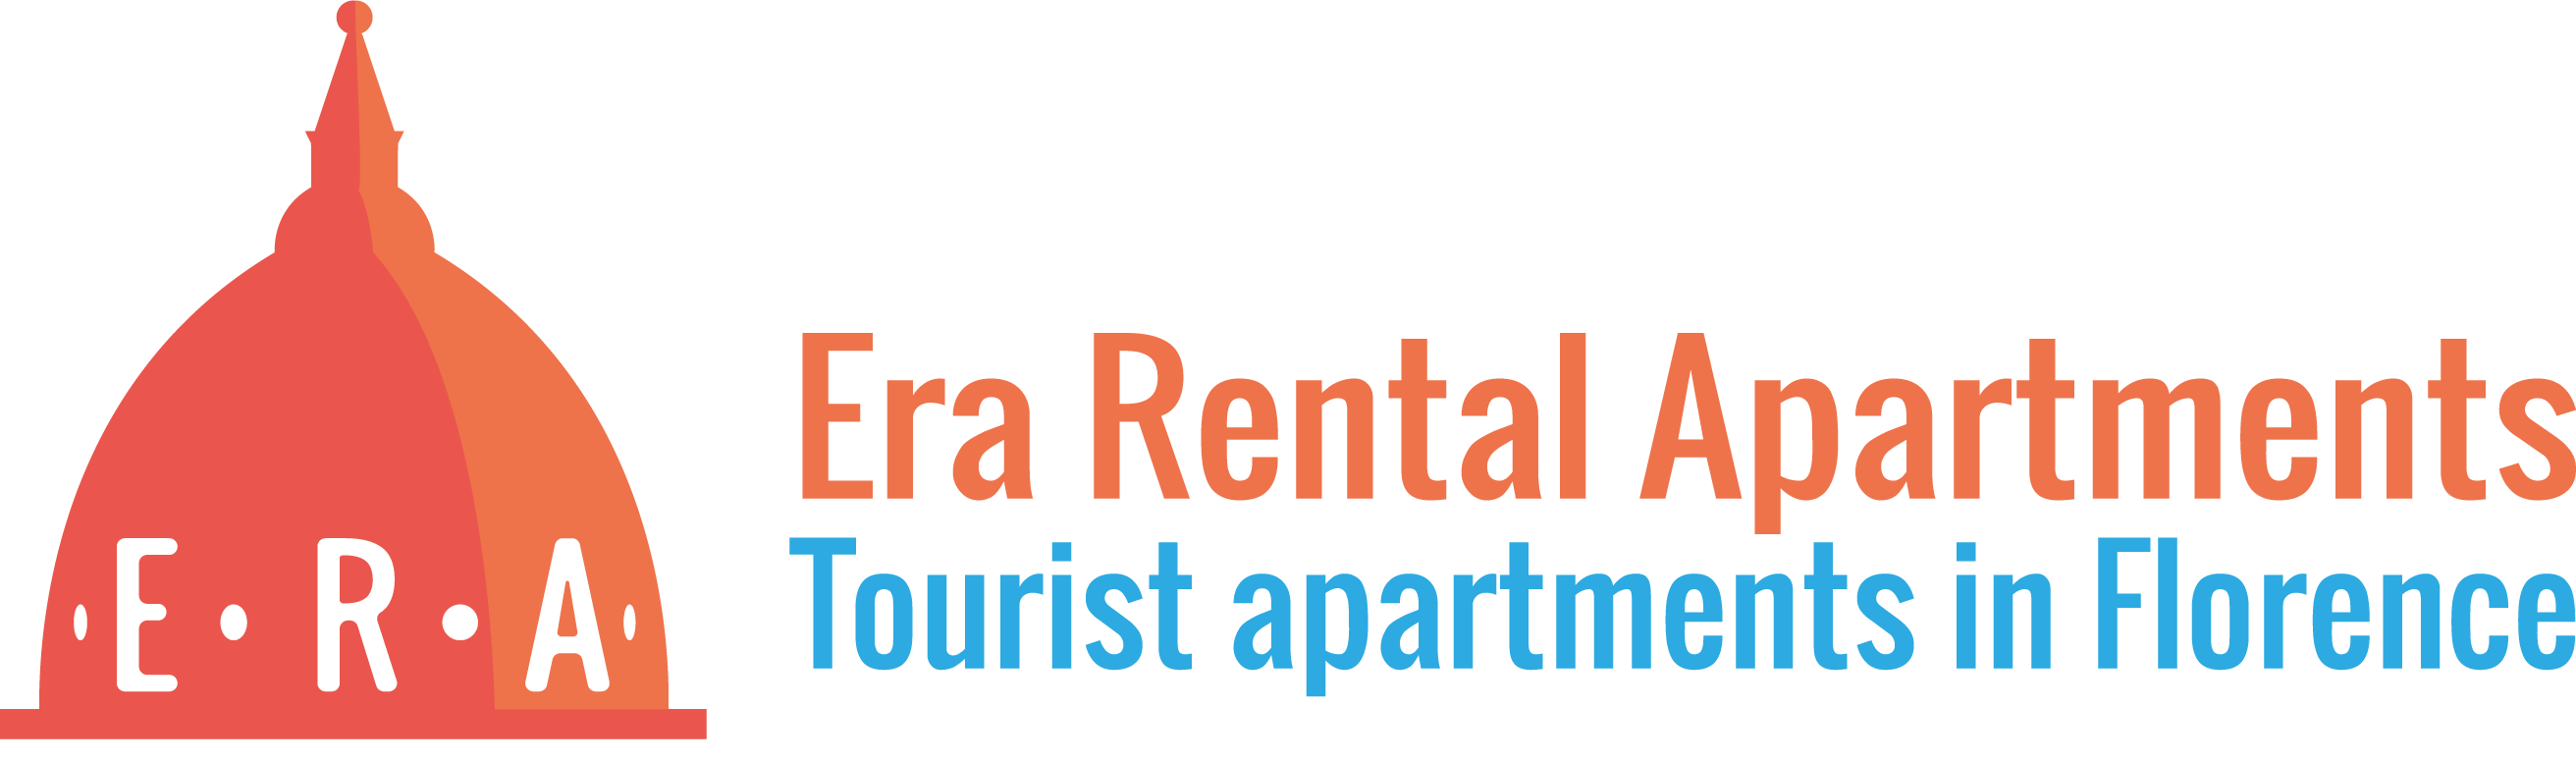 Era Rental Apartments